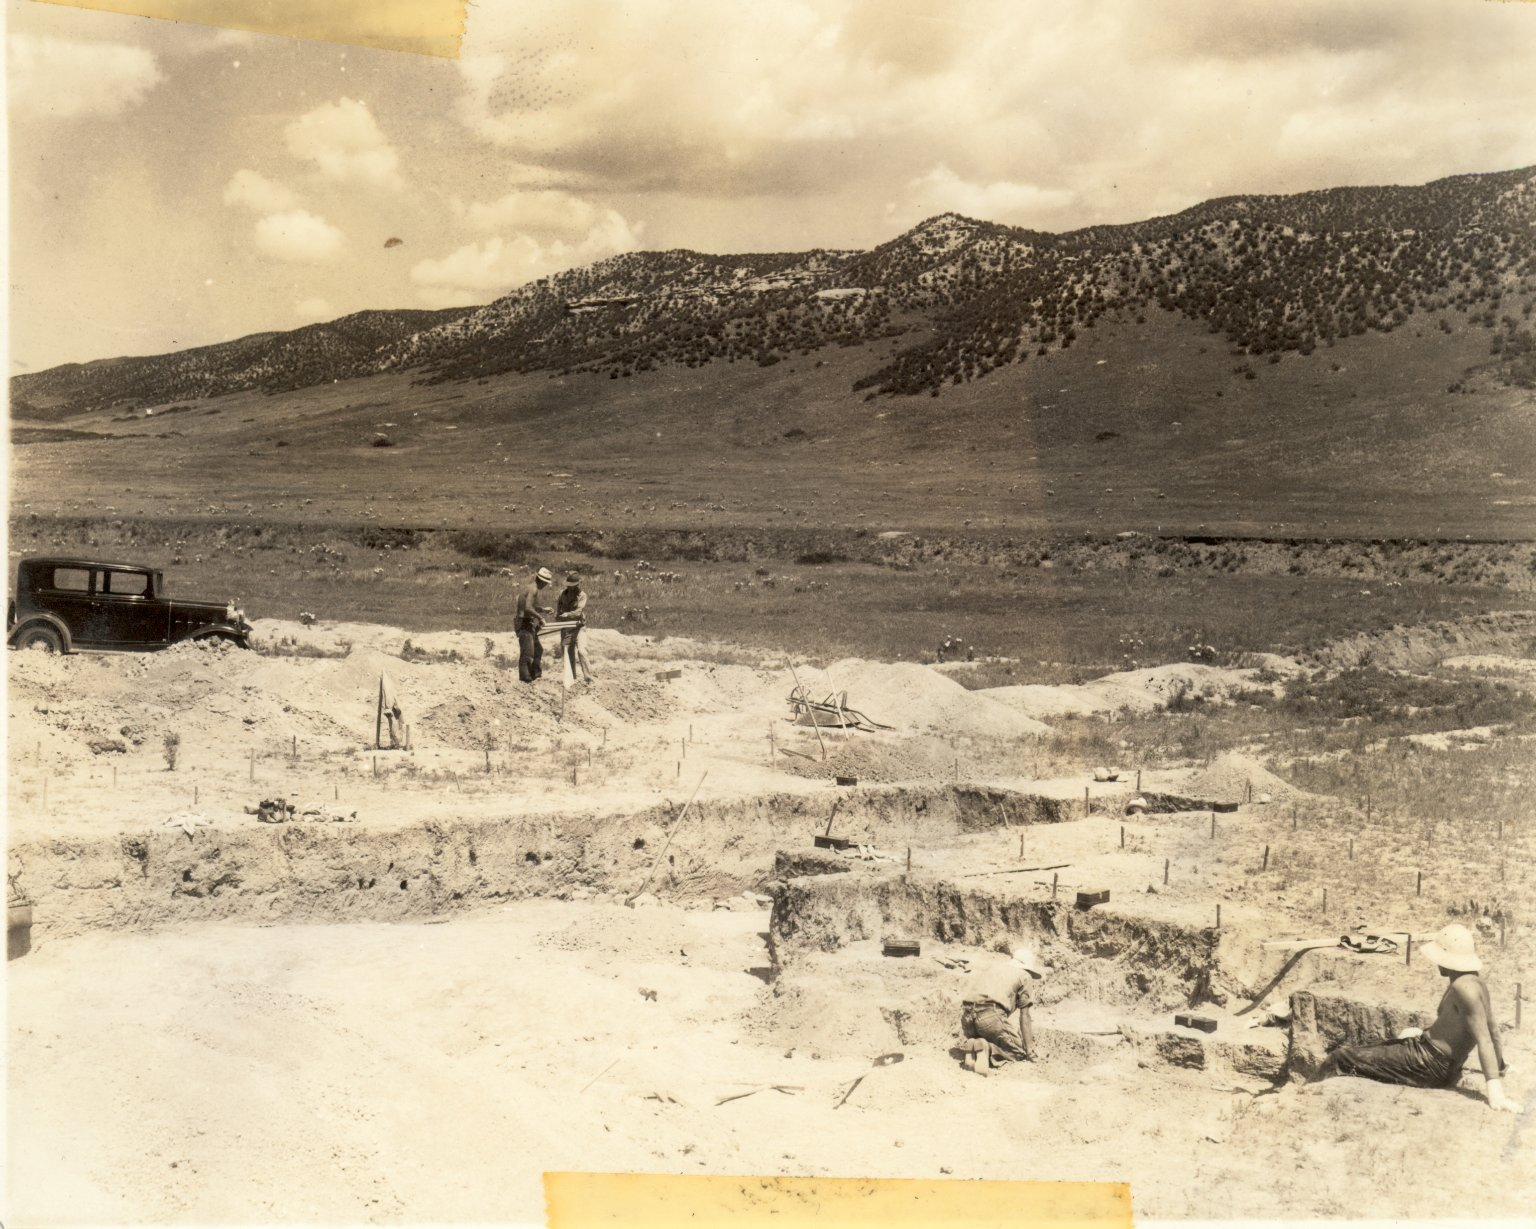 Excavation workers at site